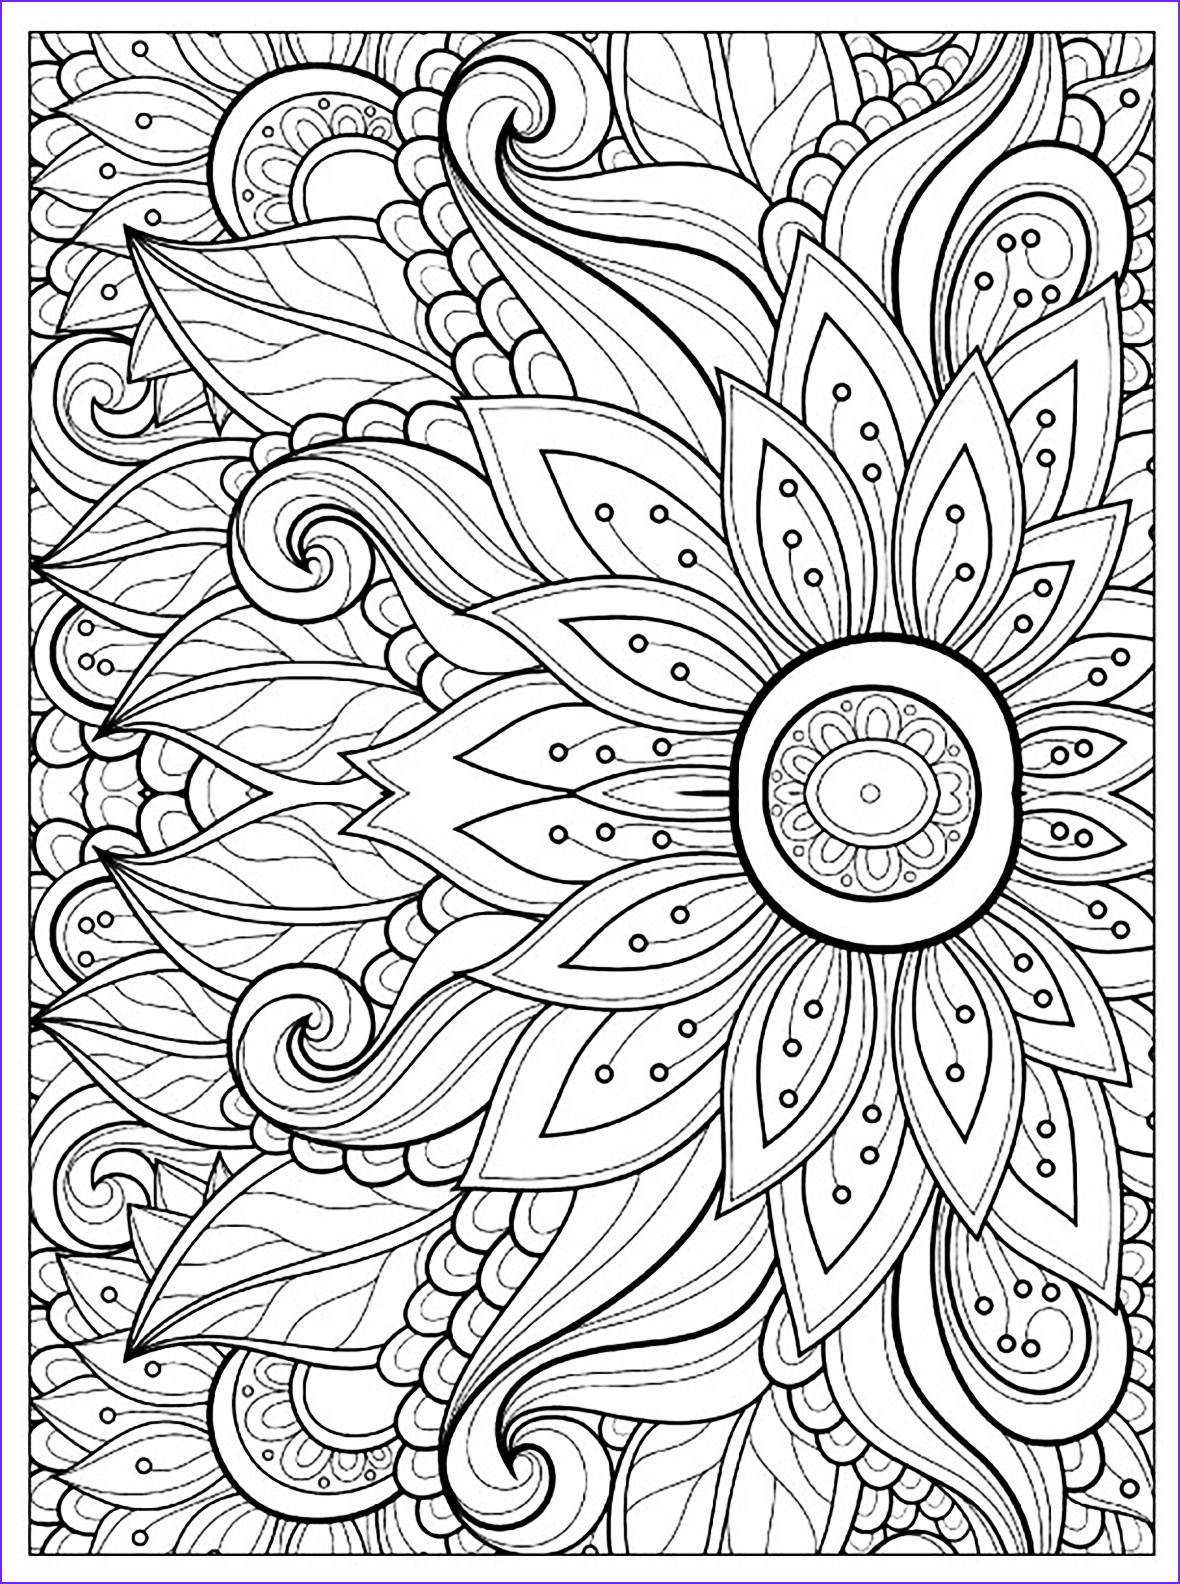 Coloring Pages Printable Adults Inspirational Image Flower with Many Petals Flowers Adult Coloring Pages